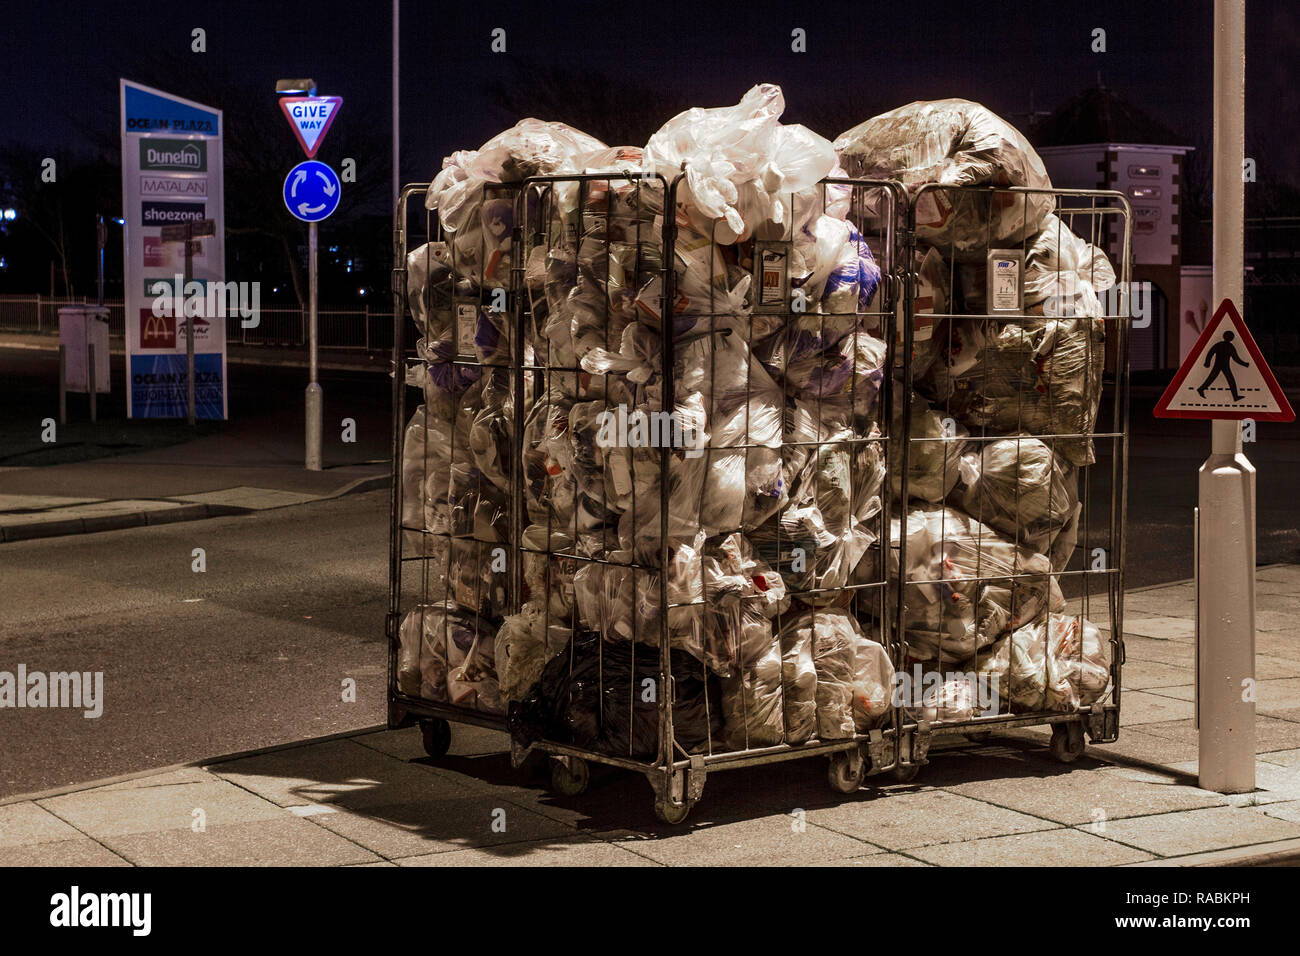 Southport, Merseyside, UK. 3rd Jan, 2019. Bags of daily Retail Waste awaiting collection. Take-away coffee cups & plastic culinary items from commercial food premises bagged and awaiting collection at dawn in town centre retail park. Credit: MediaWorldImages/Alamy Live News Stock Photo